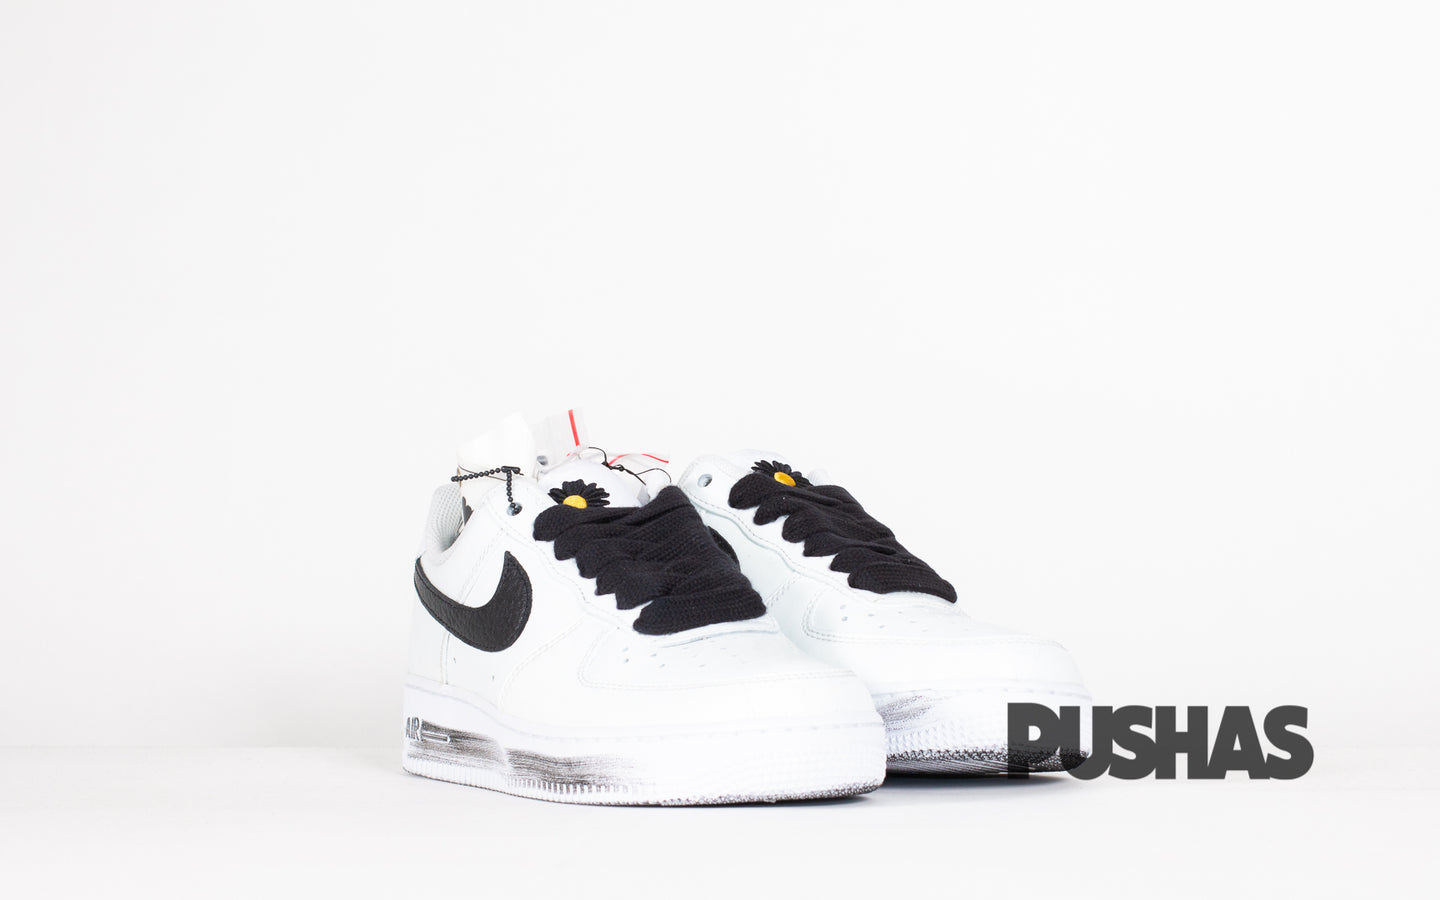 pushas-nike-Air-Force-1-Low-G-Dragon-Peaceminusone-Para-Noise-2.0